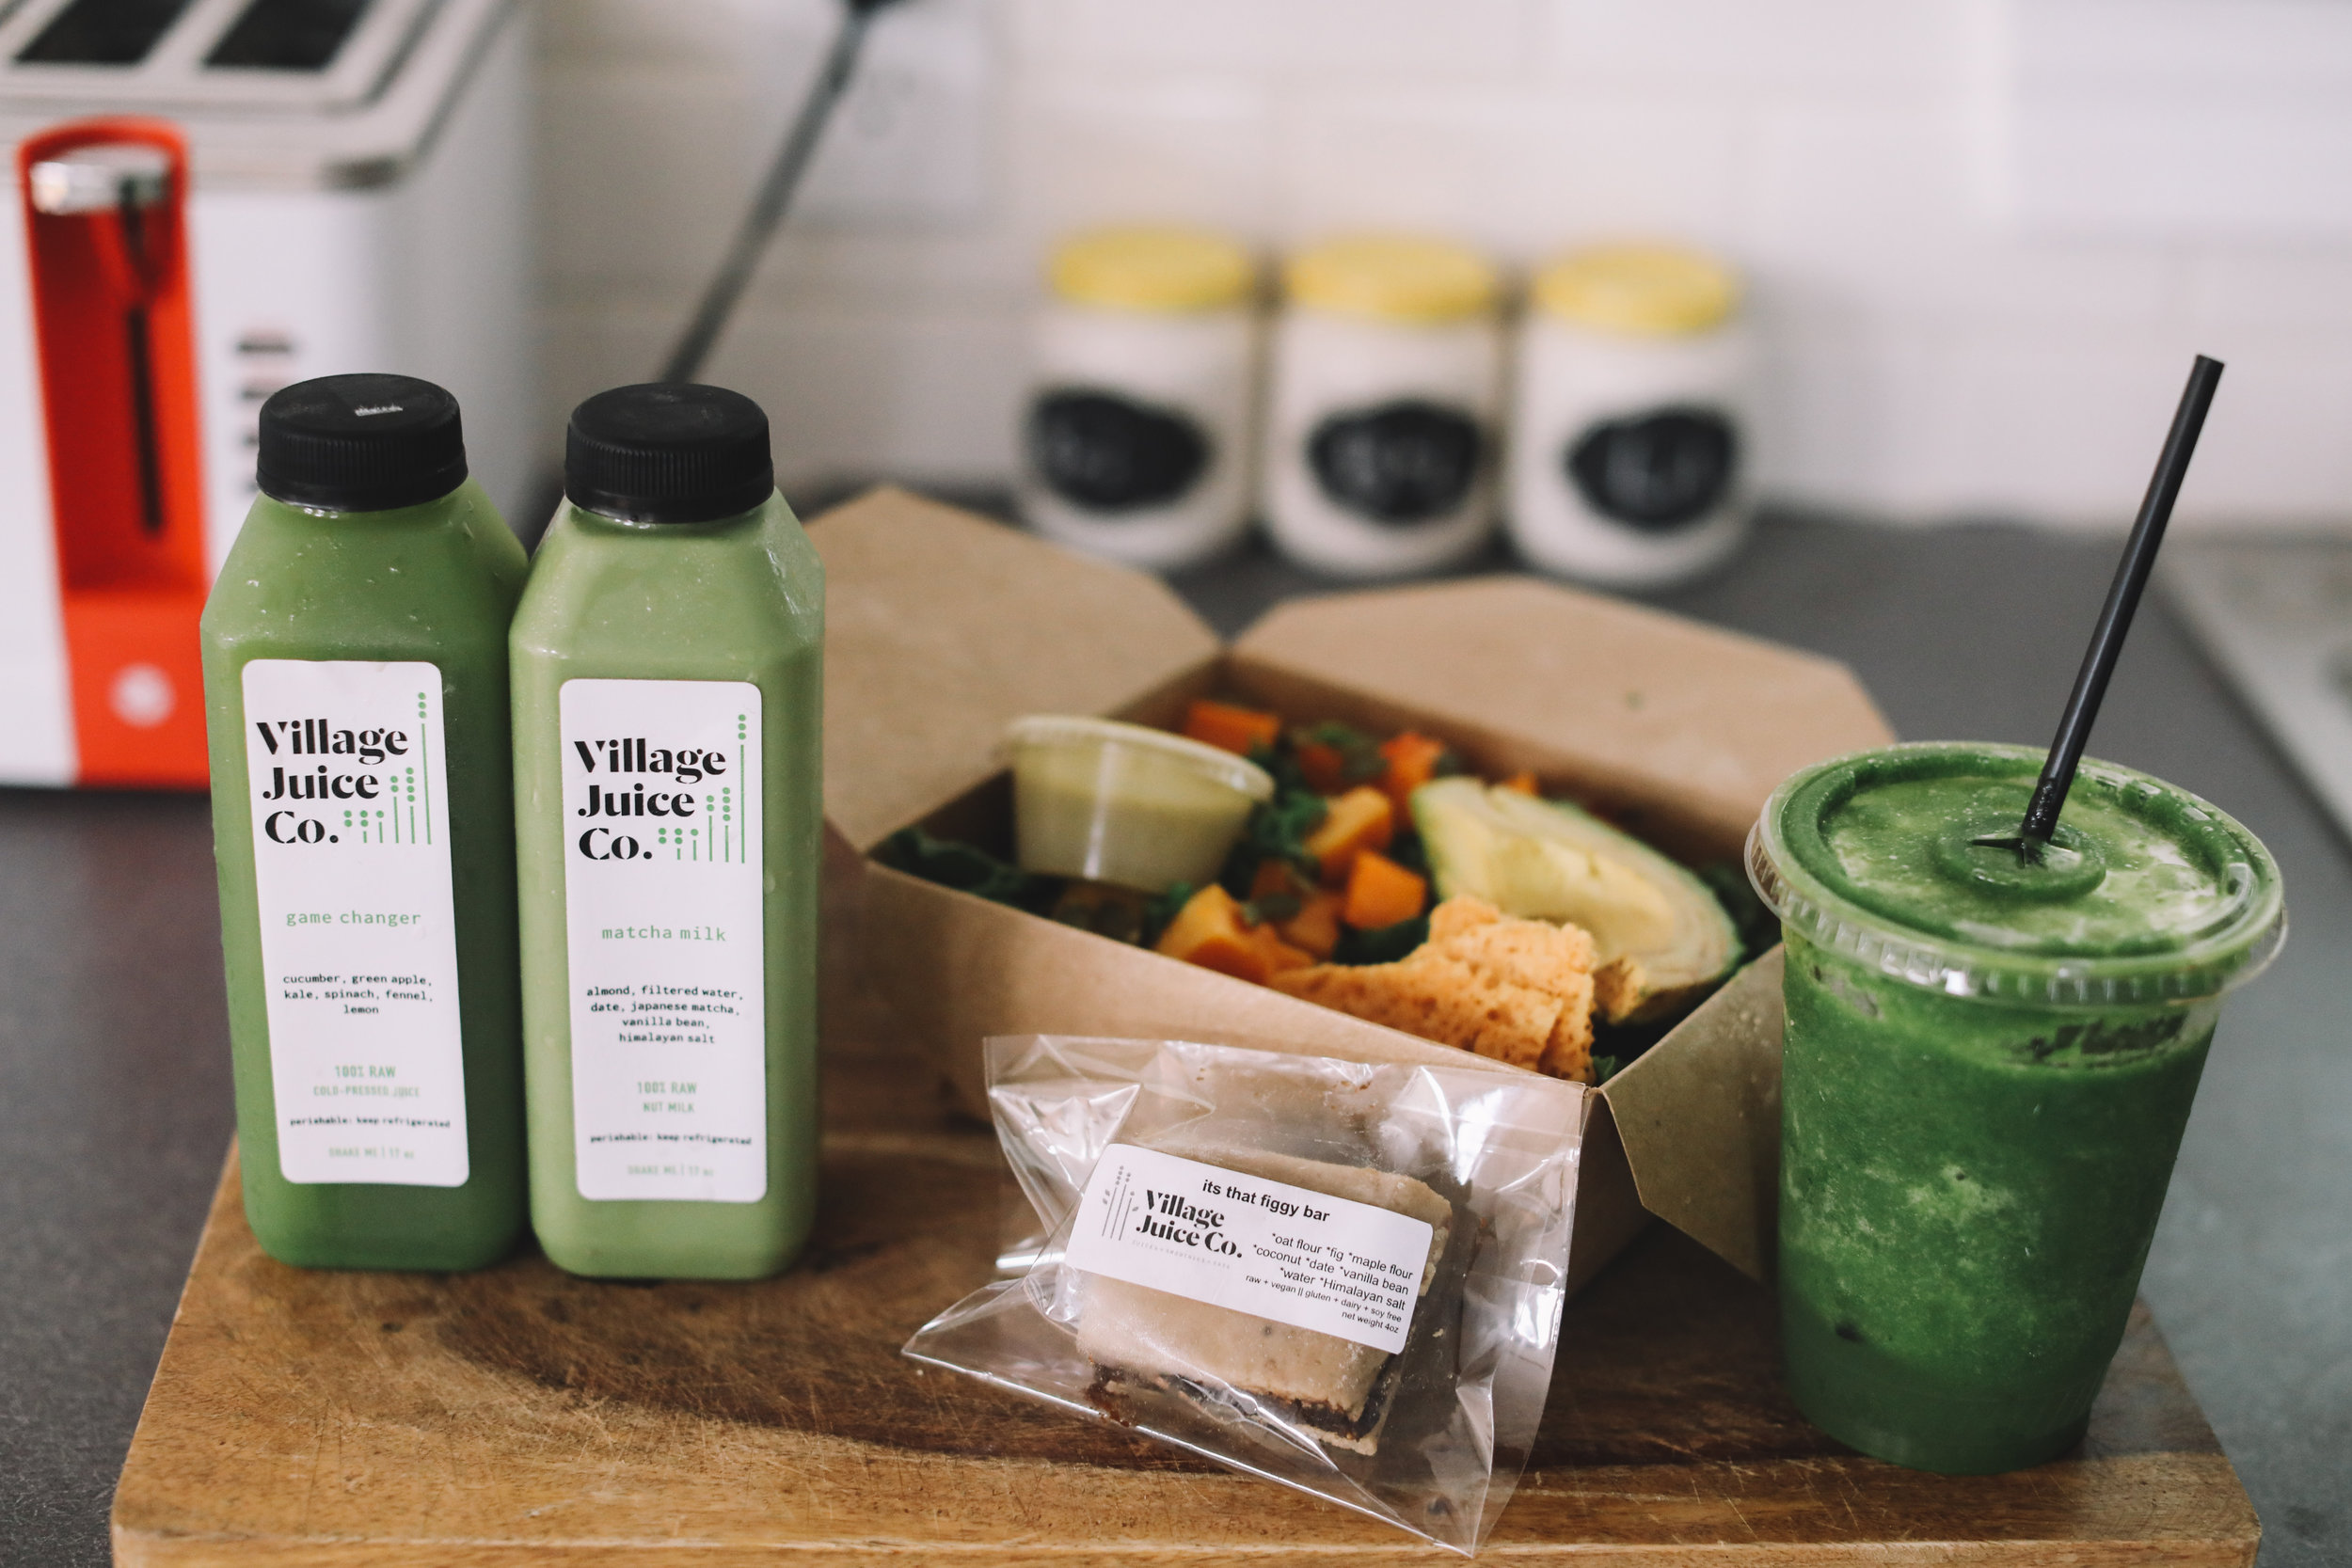 Pictured: One-Day Mini Cleanse ~ 2 juices + 1 smoothie + 1 snack bar + salad or grain bowl. This is a great way to pre-cleanse before a juice cleanse and is also just a great way to jumpstart a healthy lifestyle.